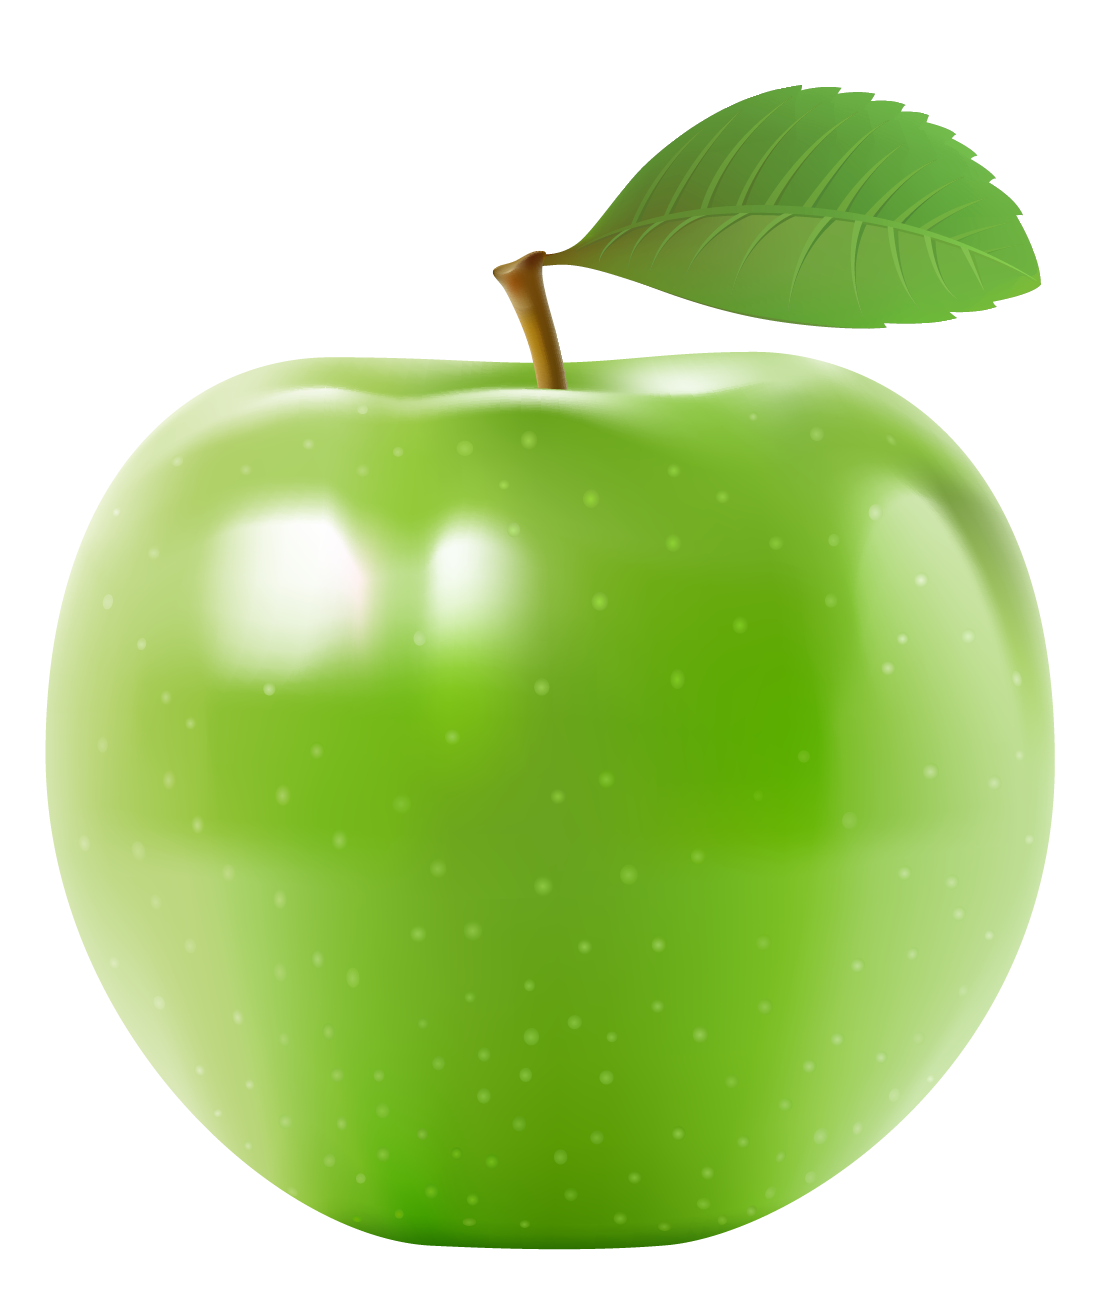 clip art royalty free download Green Apple PNG Clipart Picture